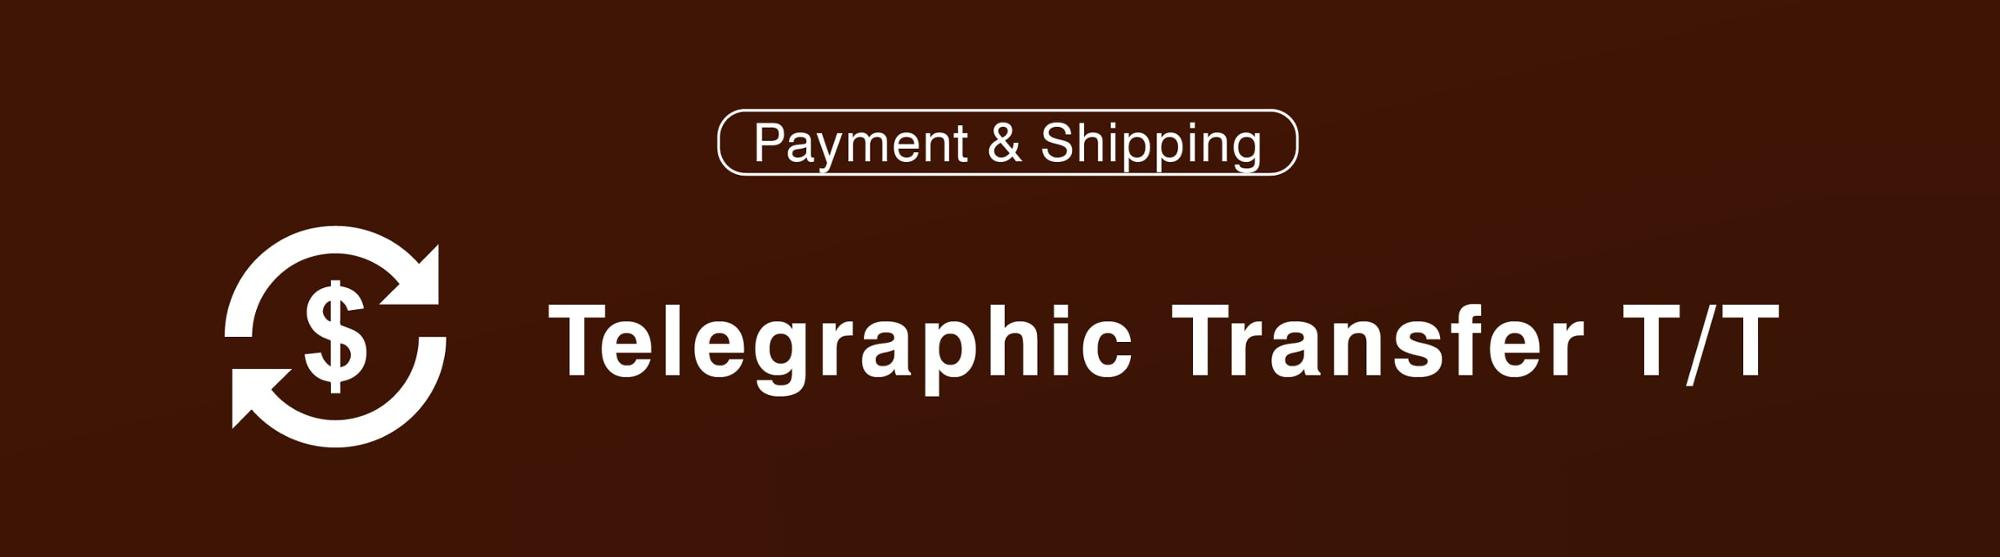 Payment & Shipping.jpg